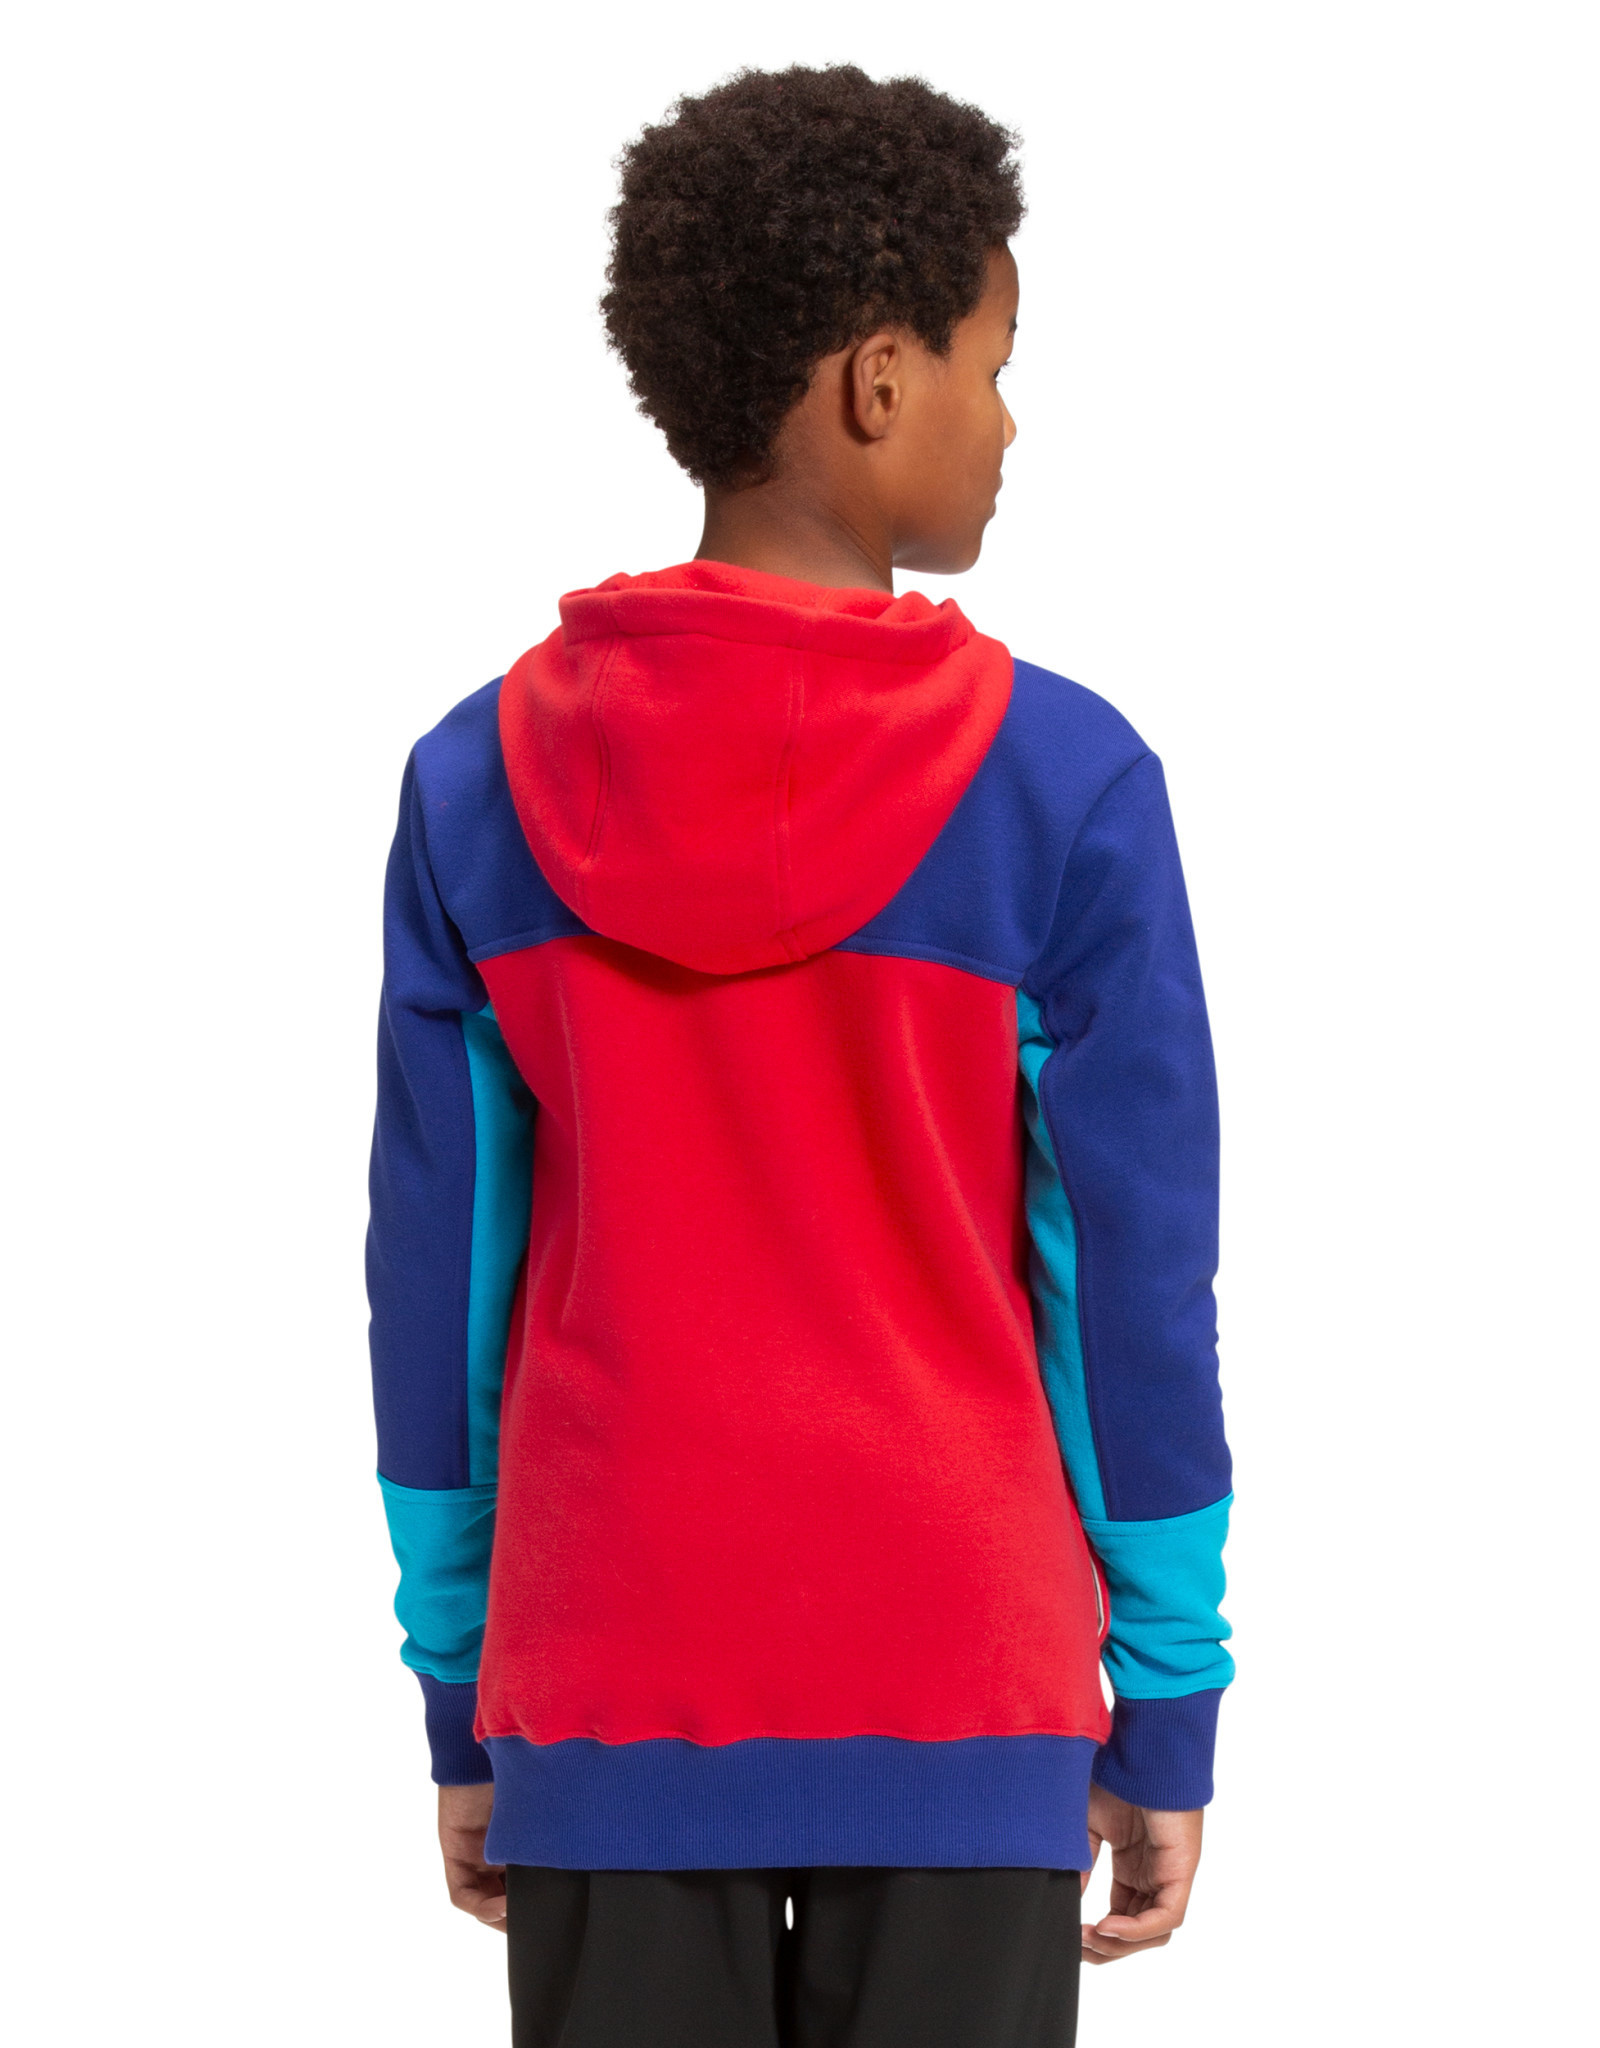 The North Face The North Face Boy's Street Logo Pullover Hoodie -S2021